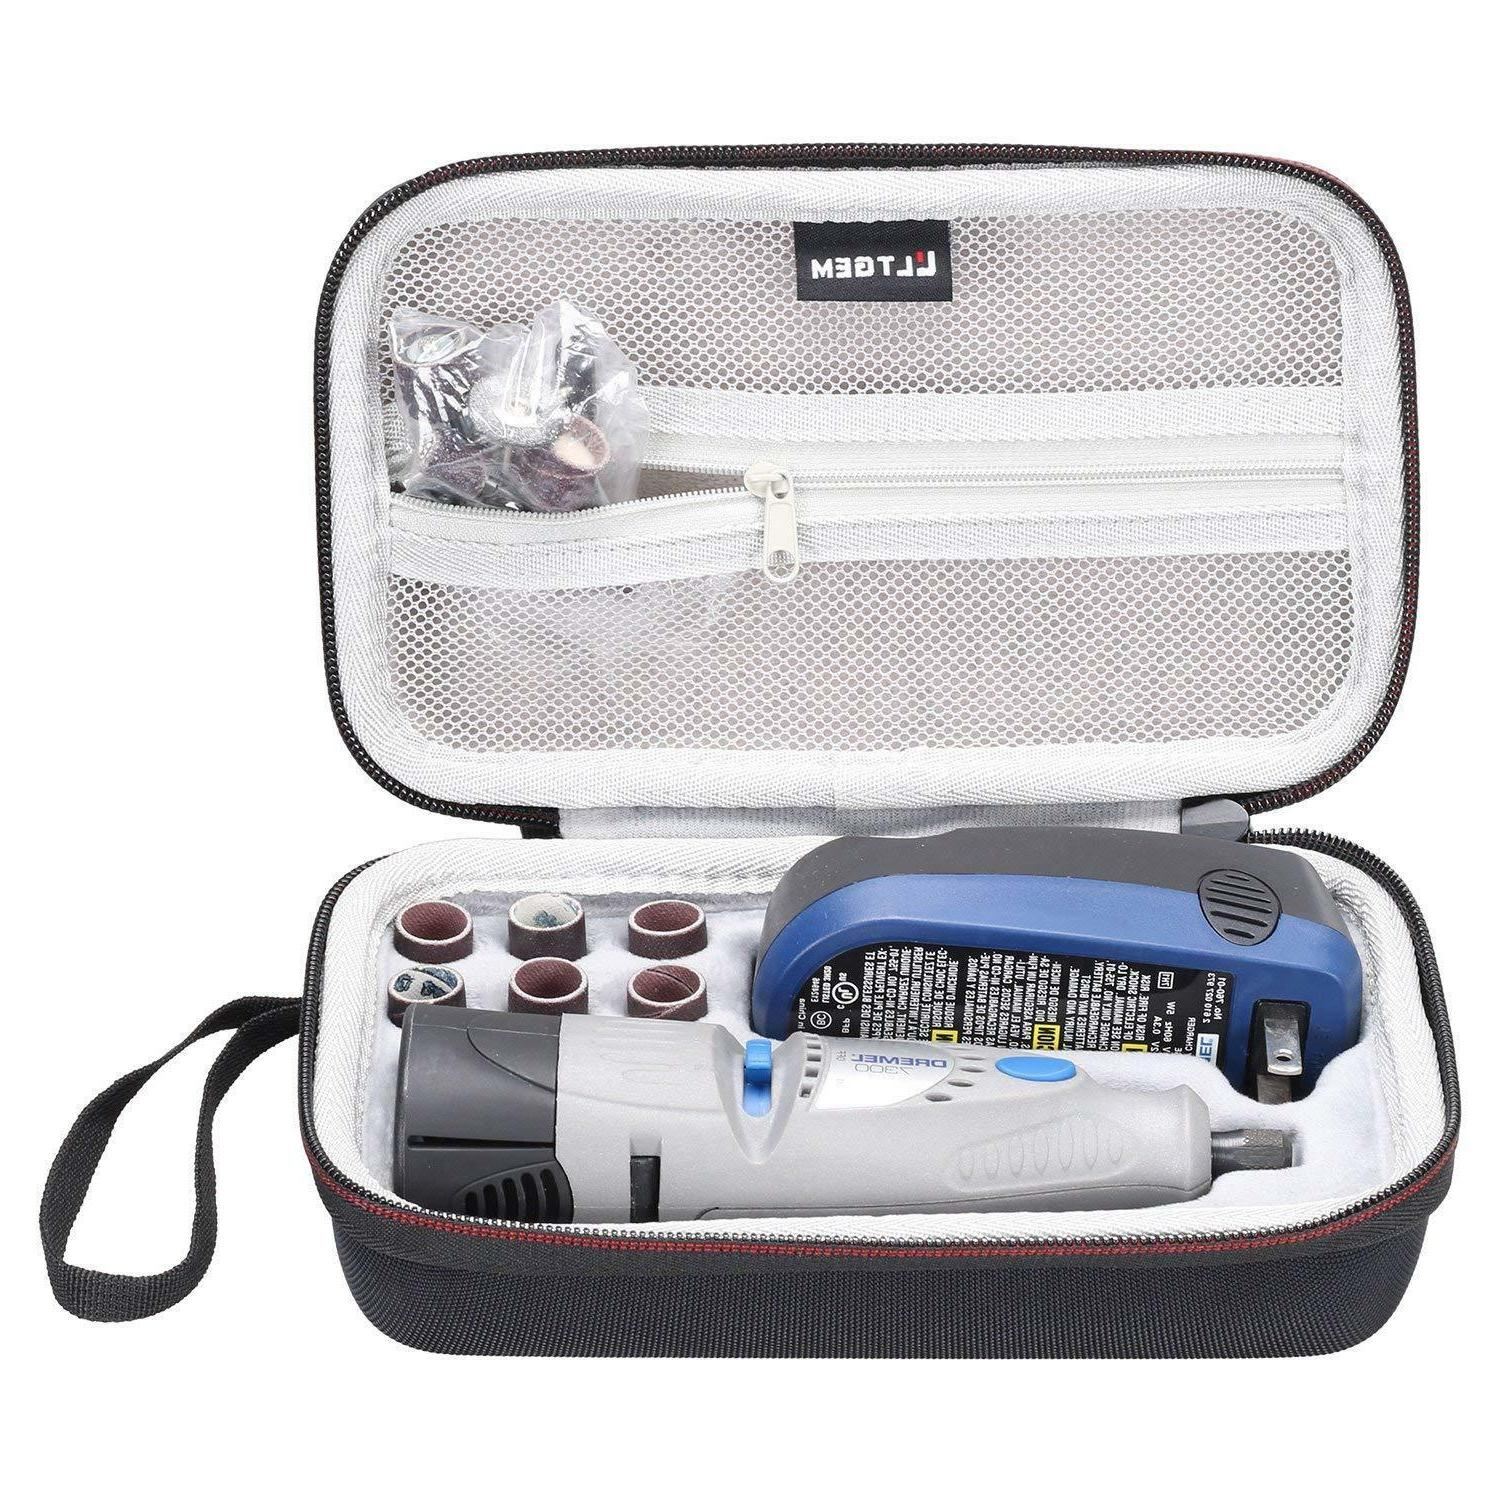 Carry Case For 7300-N/8 MiniMite Two-Speed Tool